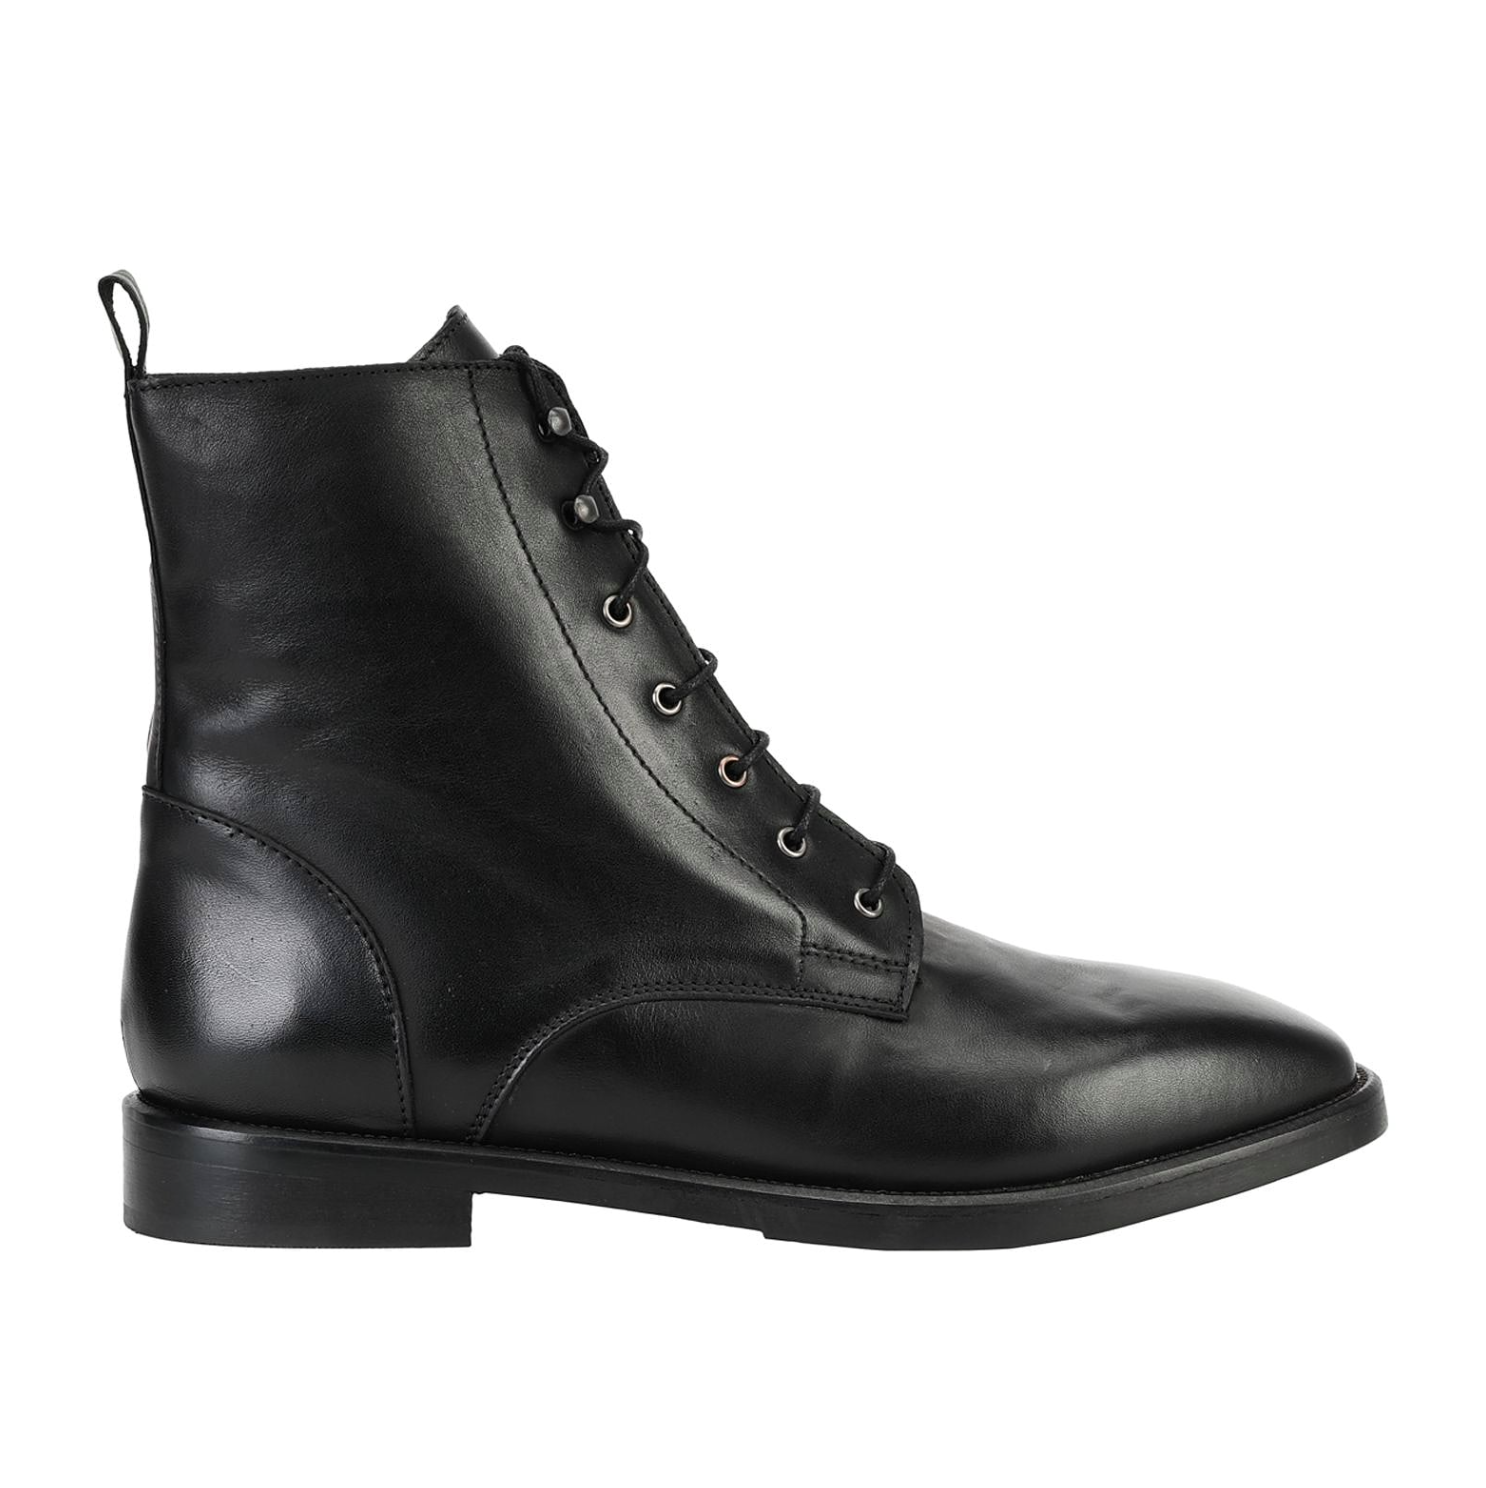 8 By YOOX Ankle Boots 軍靴